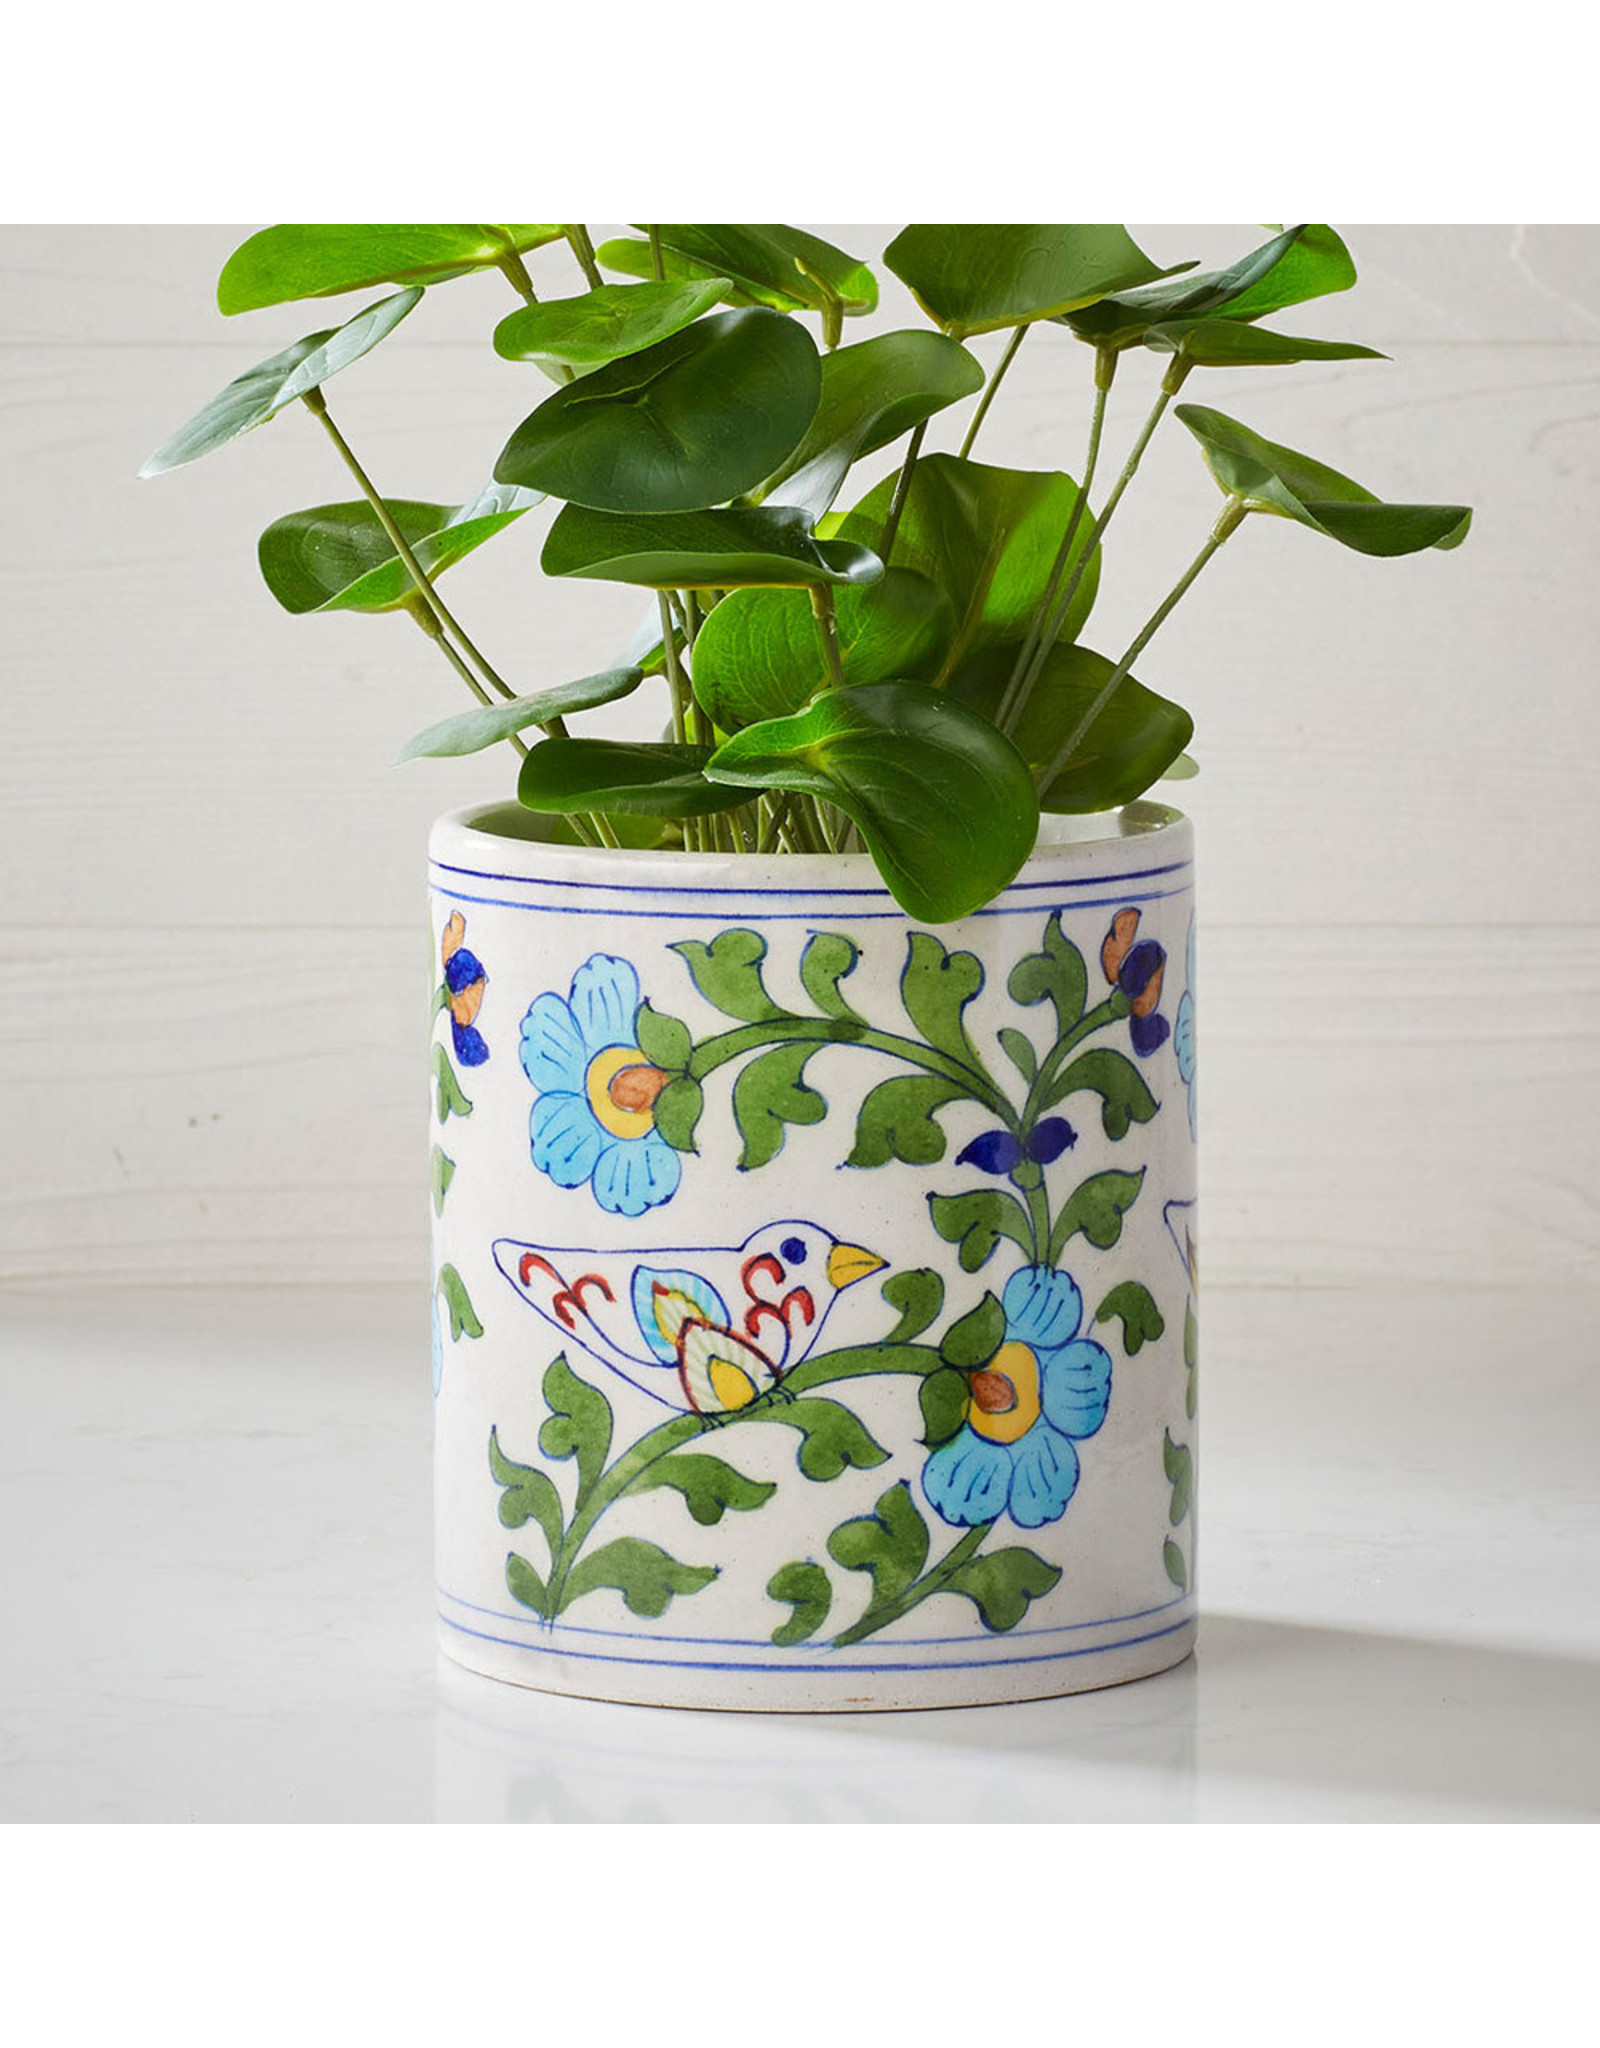 Chidiya Ceramic Planter, India